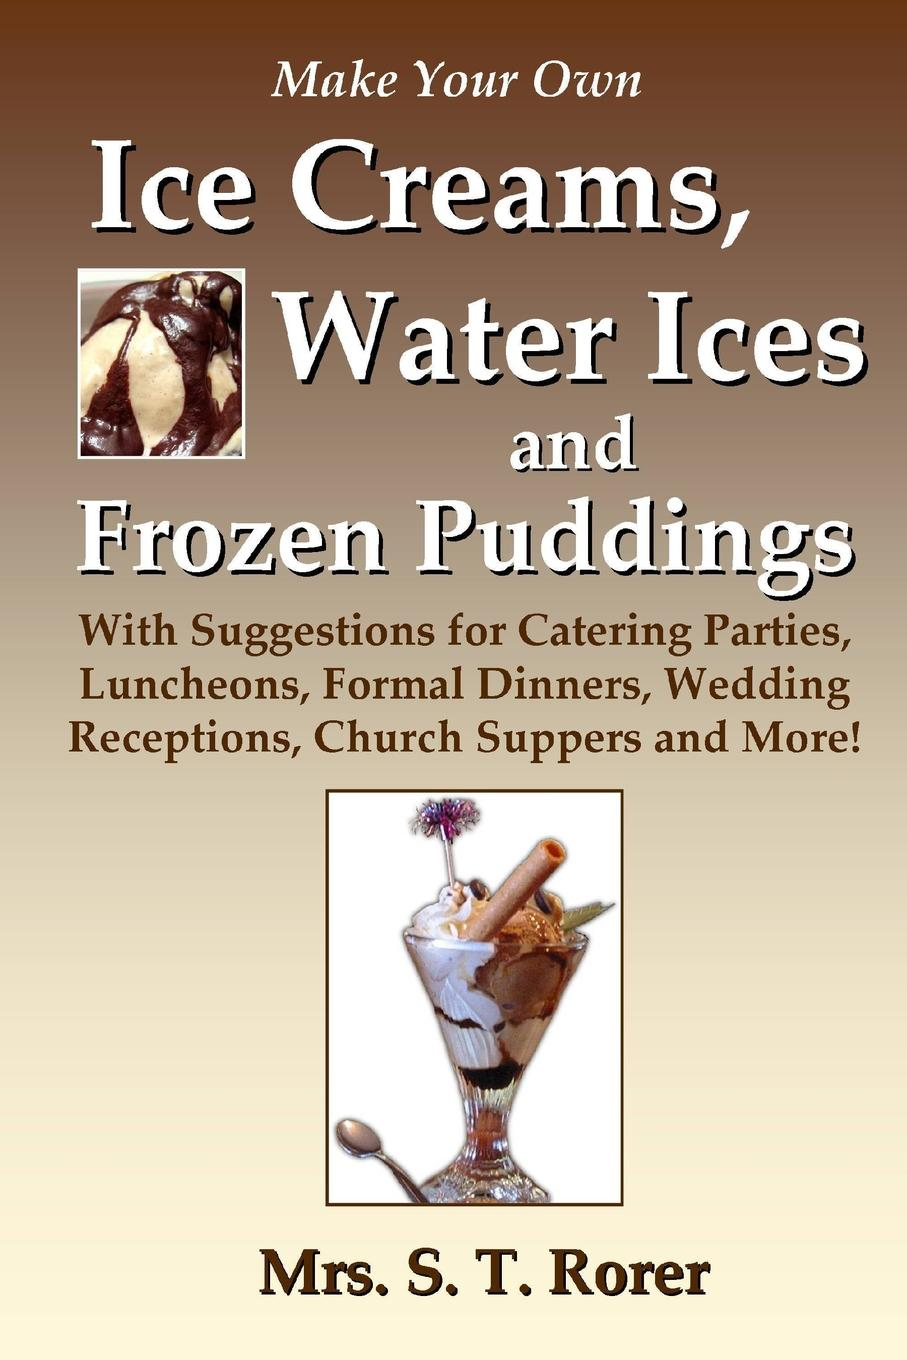 Make-Your-Own-Ice-Creams-Water-Ices-and-Frozen-Puddings-With-Suggestions-for-Catering-Parties-Luncheons-Formal-Dinners-Wedding-Receptions-Church-Suppe